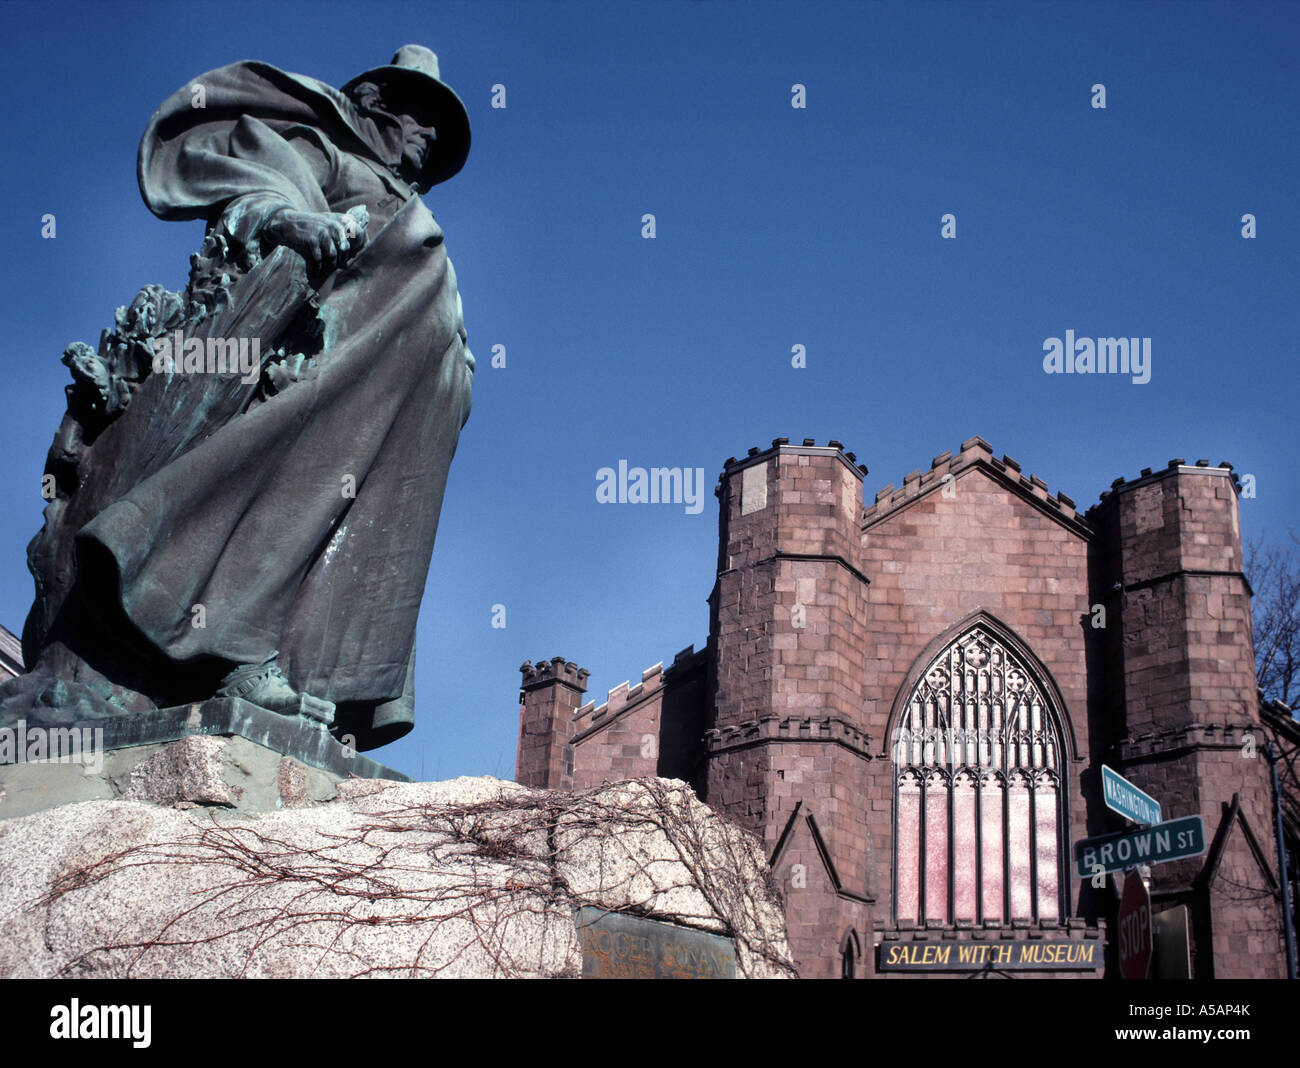 Statue de Roger Conant Salem Witch Museum Salem Massachusetts Photo Stock